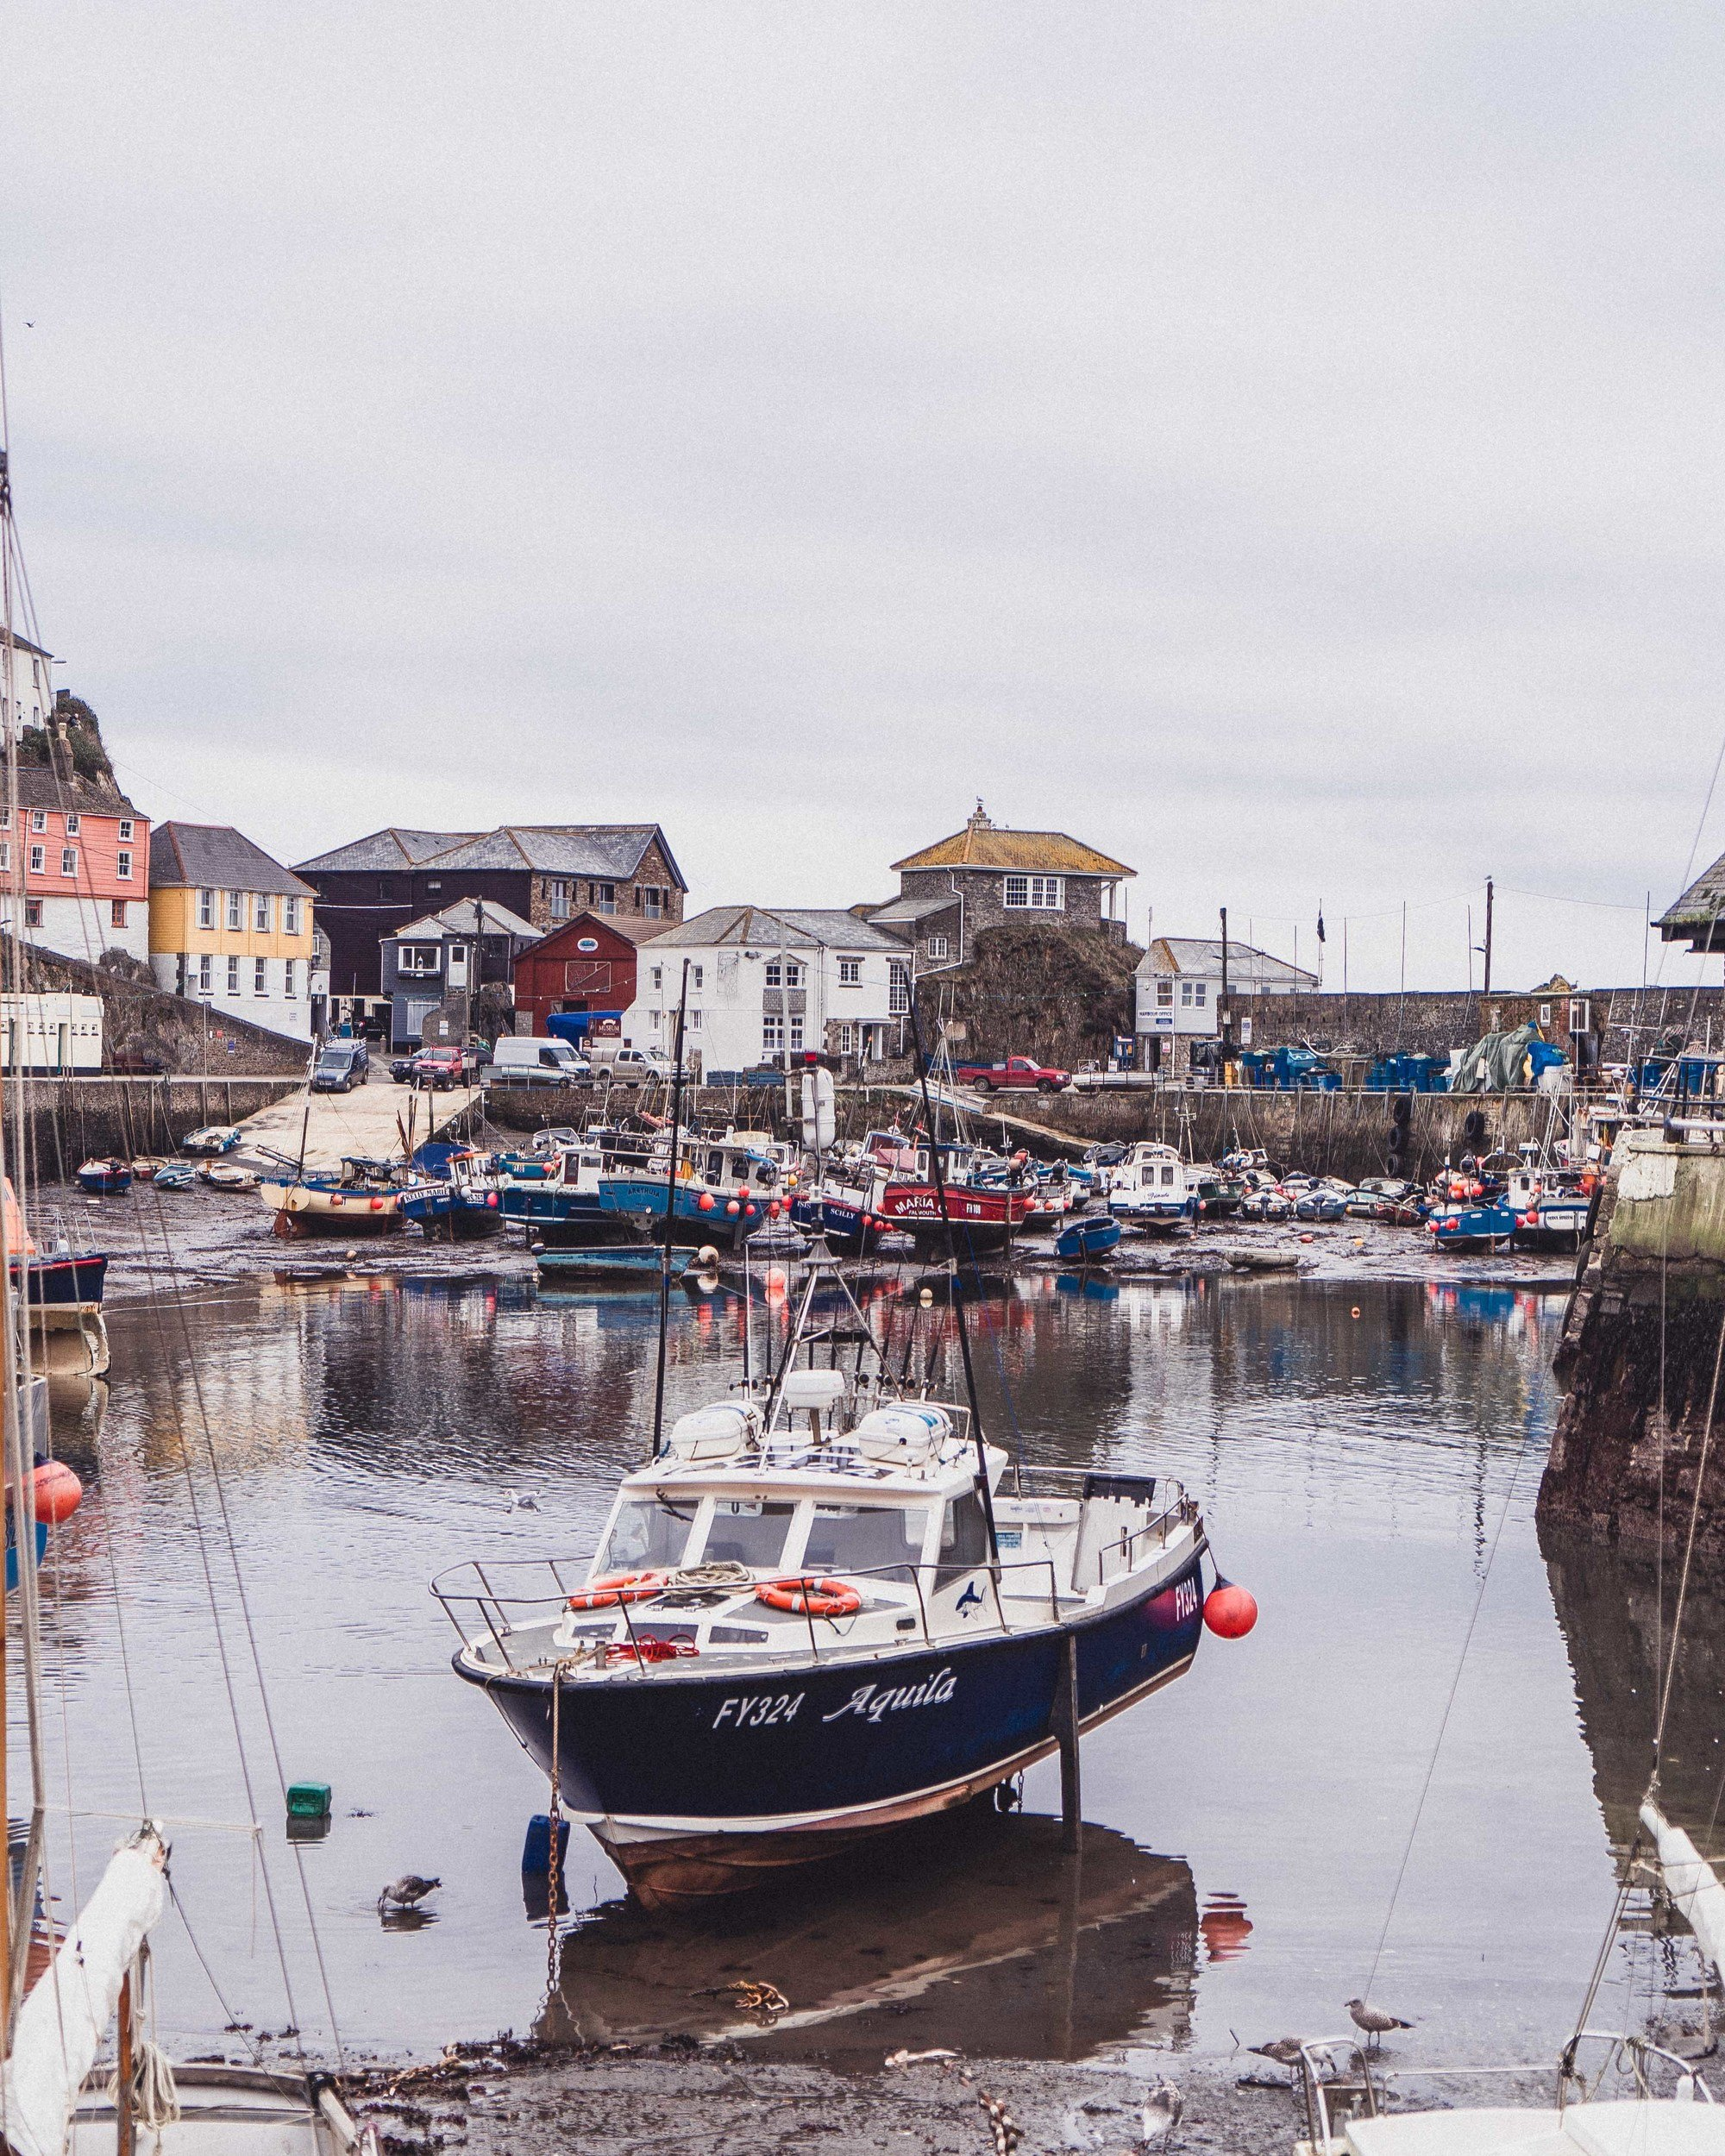 How to Spend a Weekend in Cornwall Itinerary (by a local!) How to spend 48 hours in South West England (Cornish accommodation, activities, and things to do!)